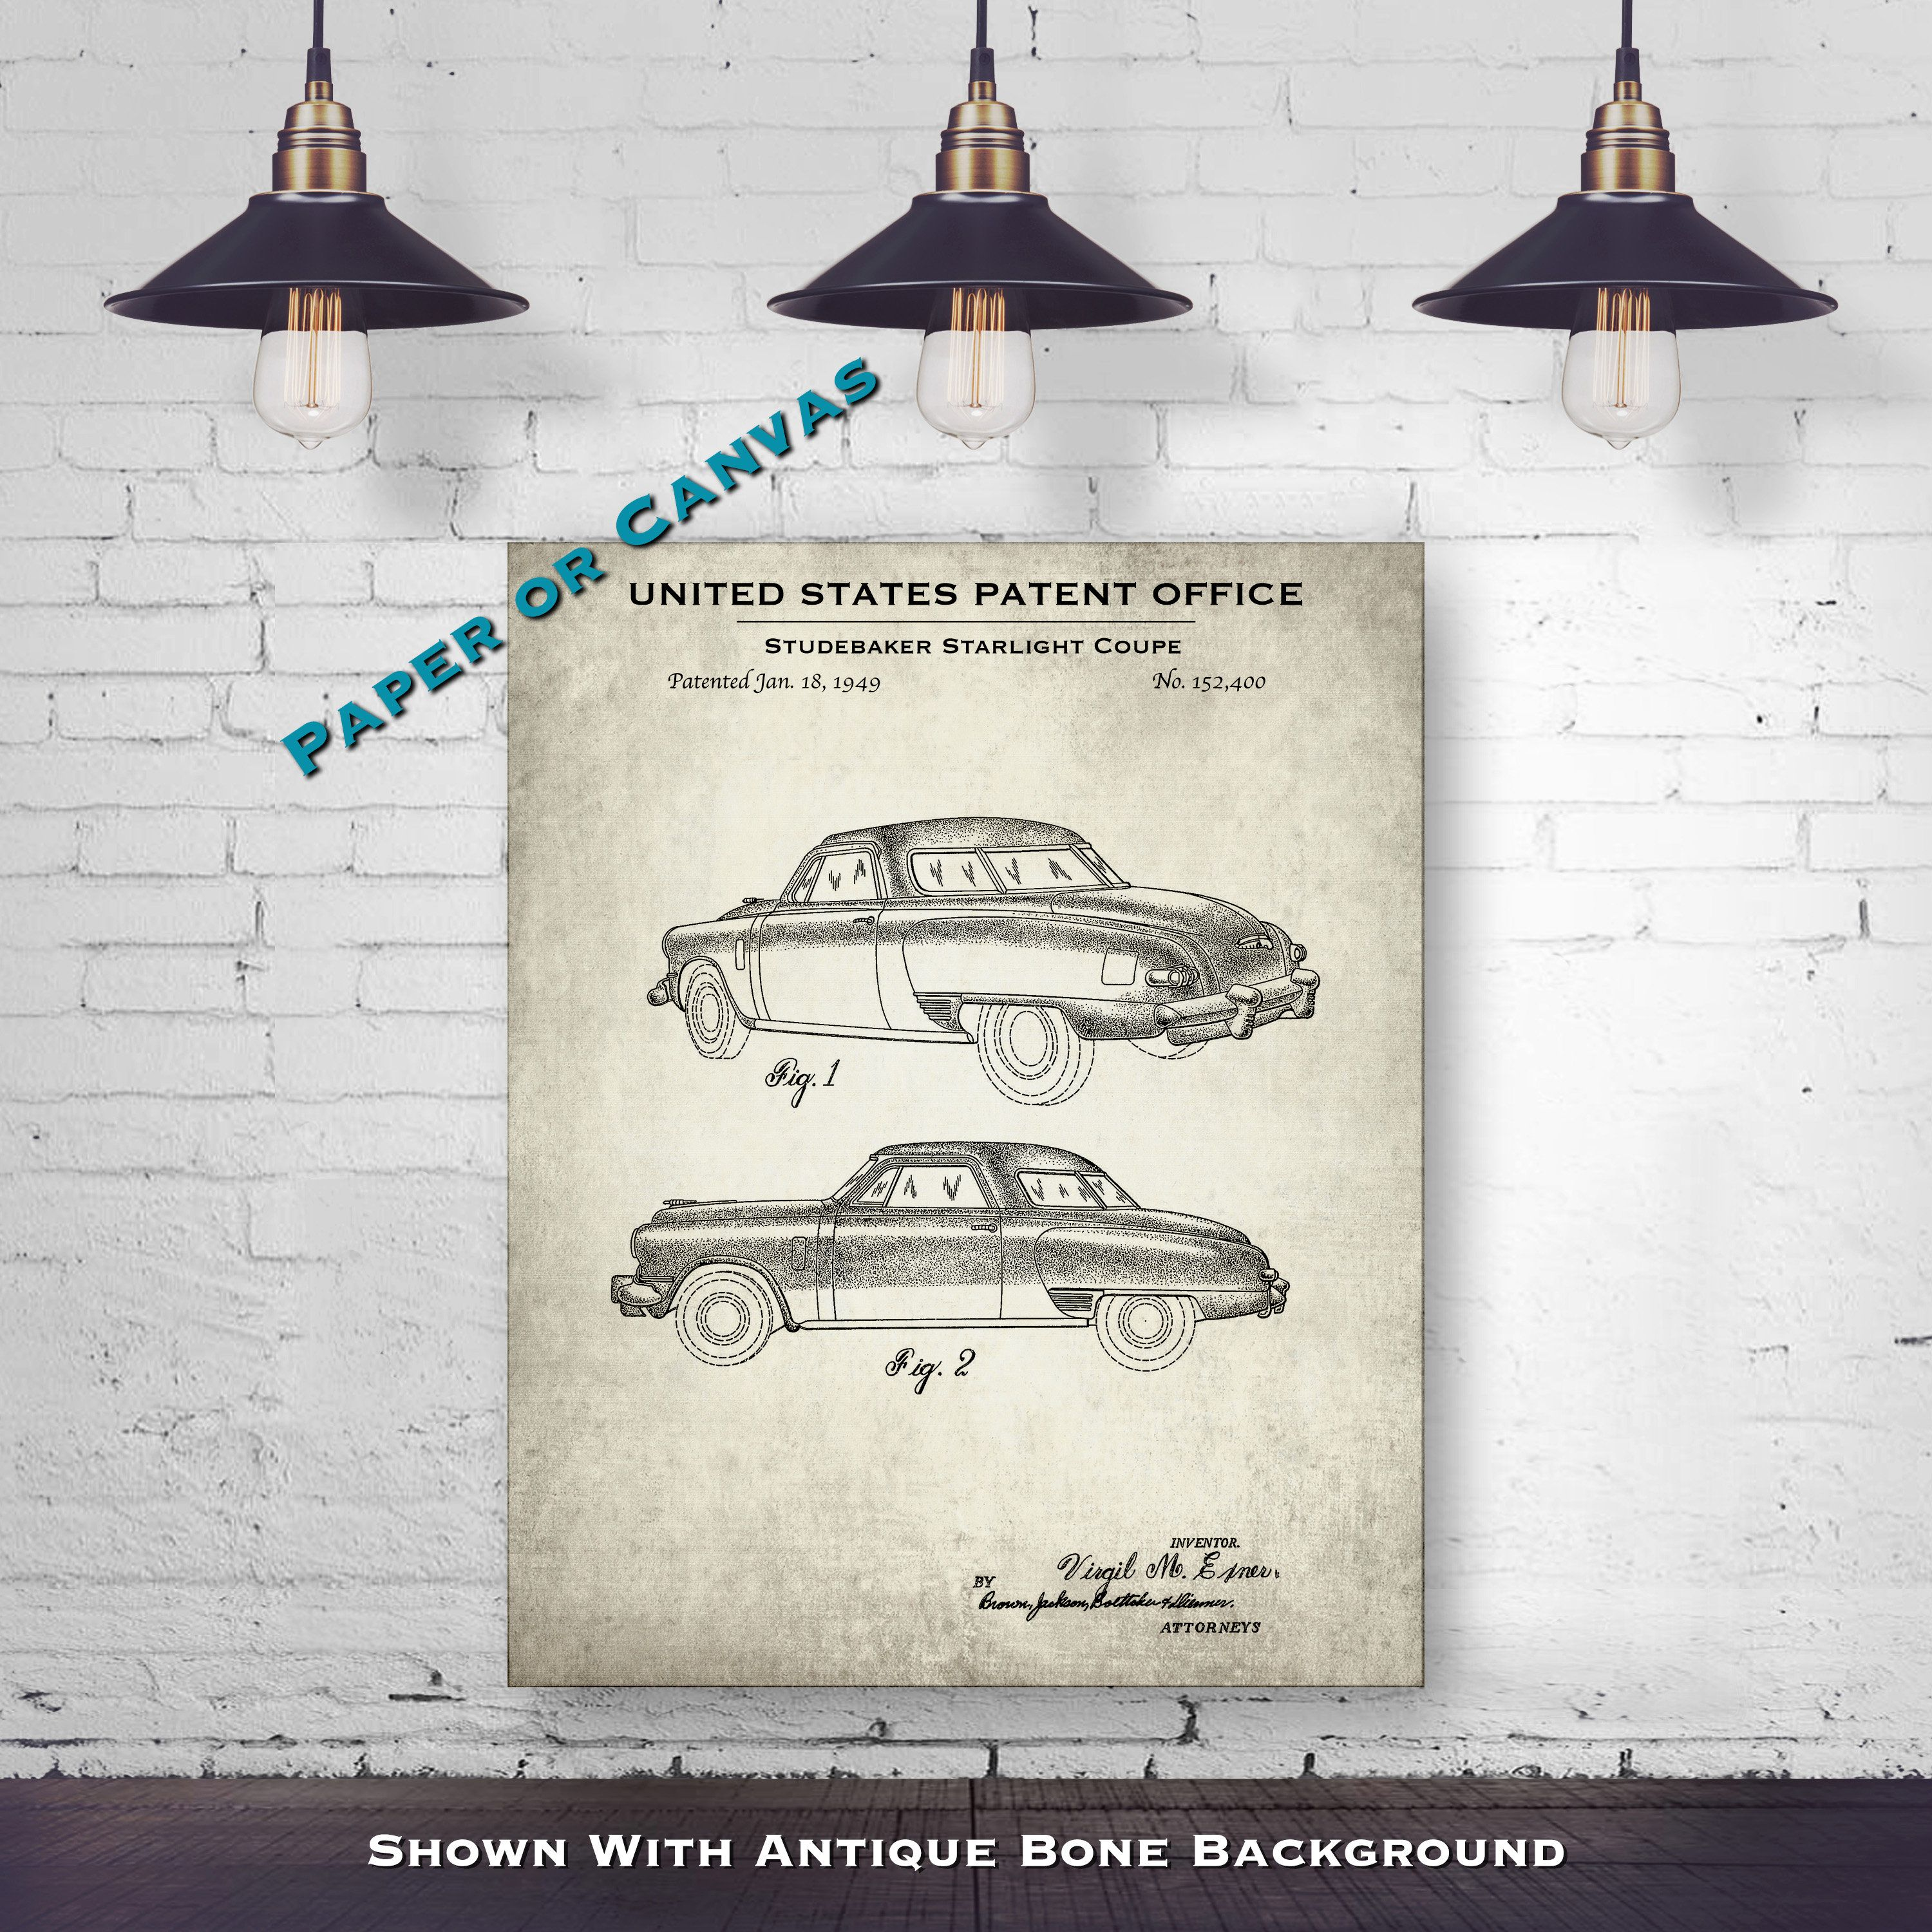 1947 Studebaker Starlight Coupe Automobile Patent Print